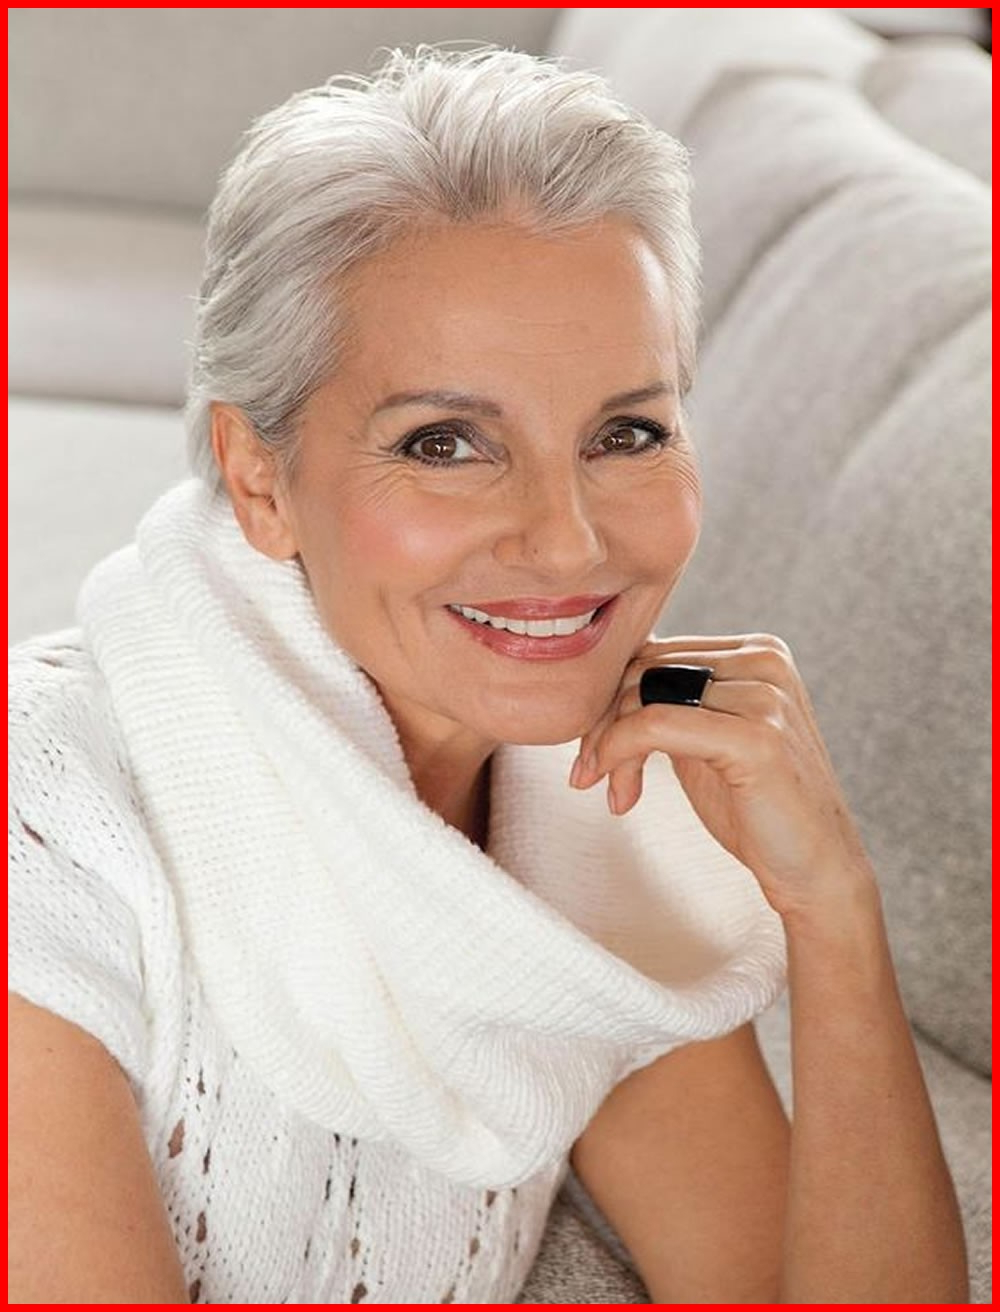 Hairstyles For Short Gray Hair 239649 2018 Short Haircuts For Older Pertaining To Short Hairstyles For Mature Woman (View 25 of 25)